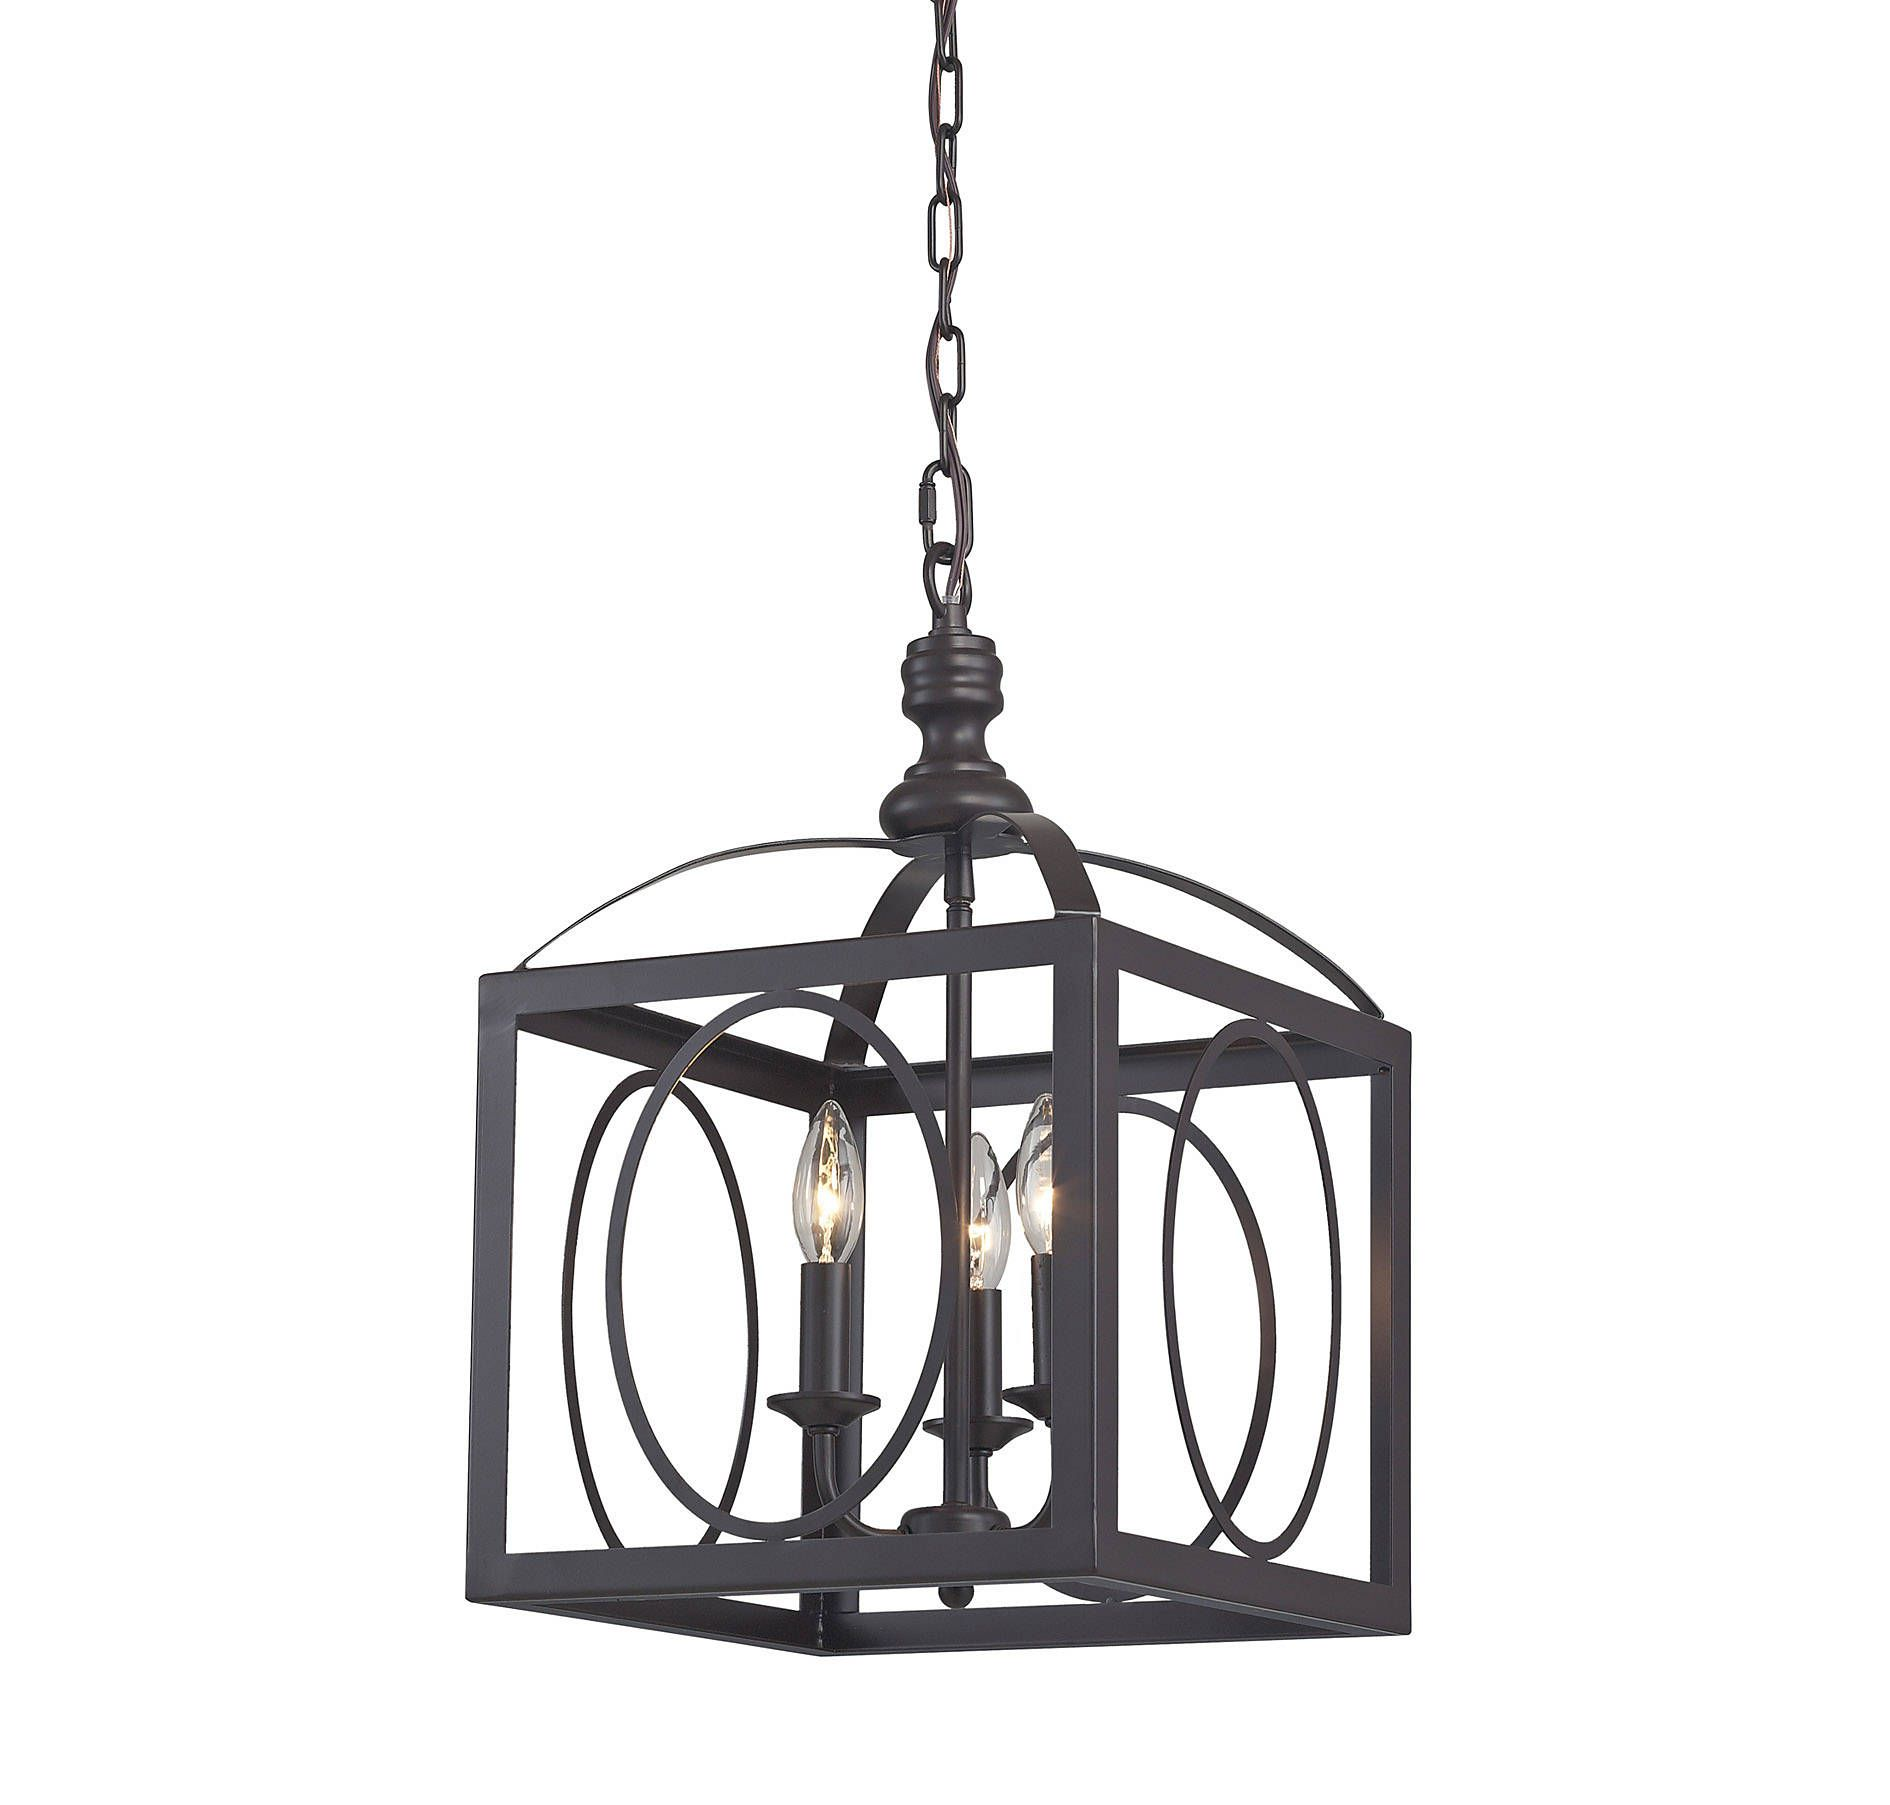 Sterling Industries 141 001 Ailsa Ringed 3 Light Cluster Lantern In Ceiling Lights Chandeliers Indoor Chandeliers Lee 3 Light Pendant Pendant Lighting Light